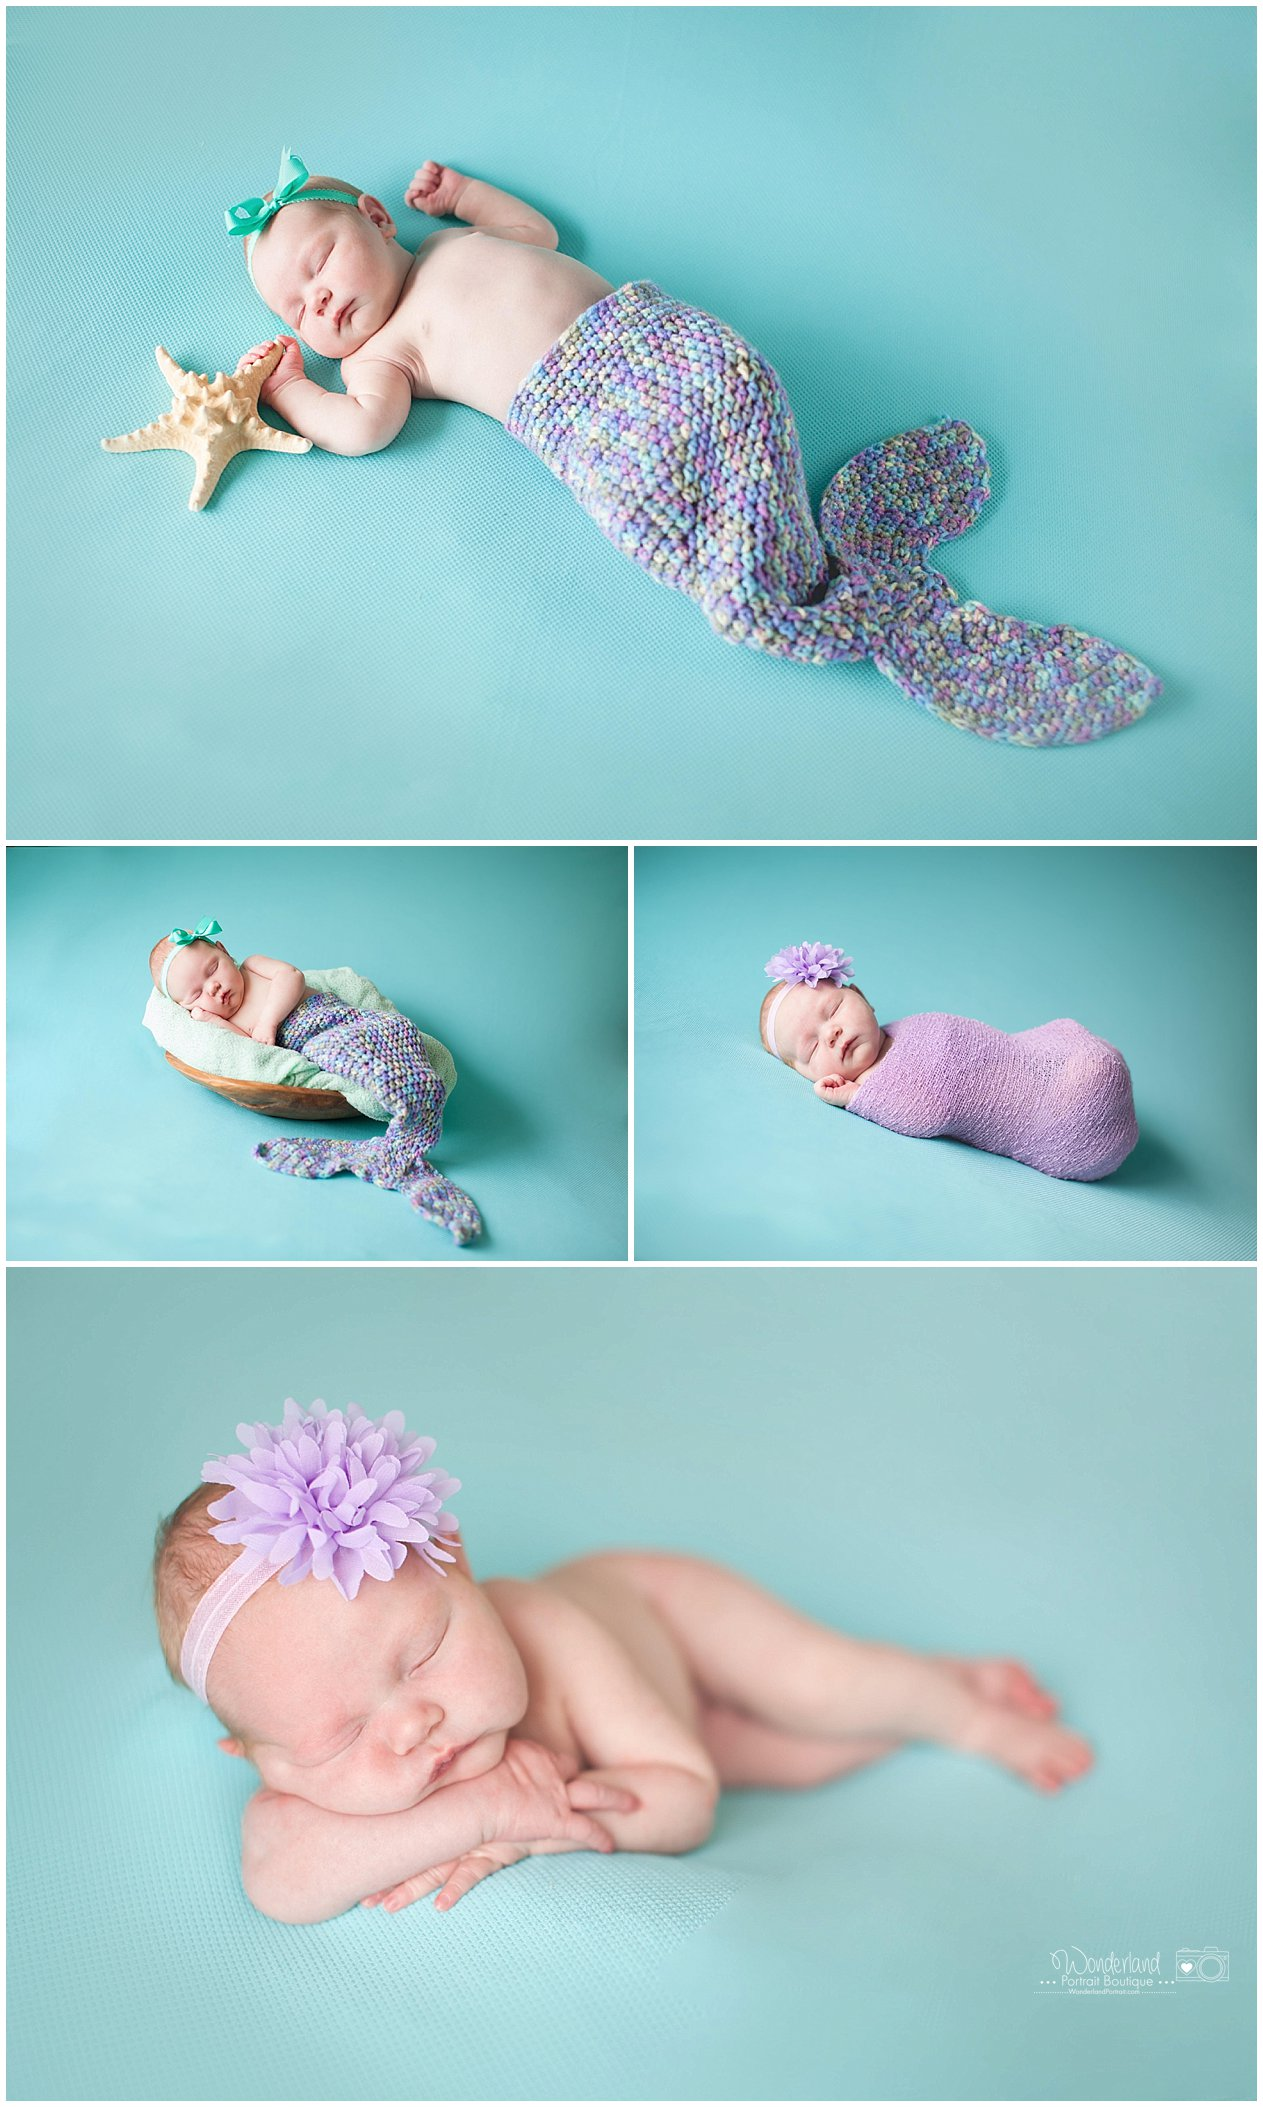 Mermaid Tail Star Fish Pose idea Abington PA Newborn Photography | WonderlandPortrait.com